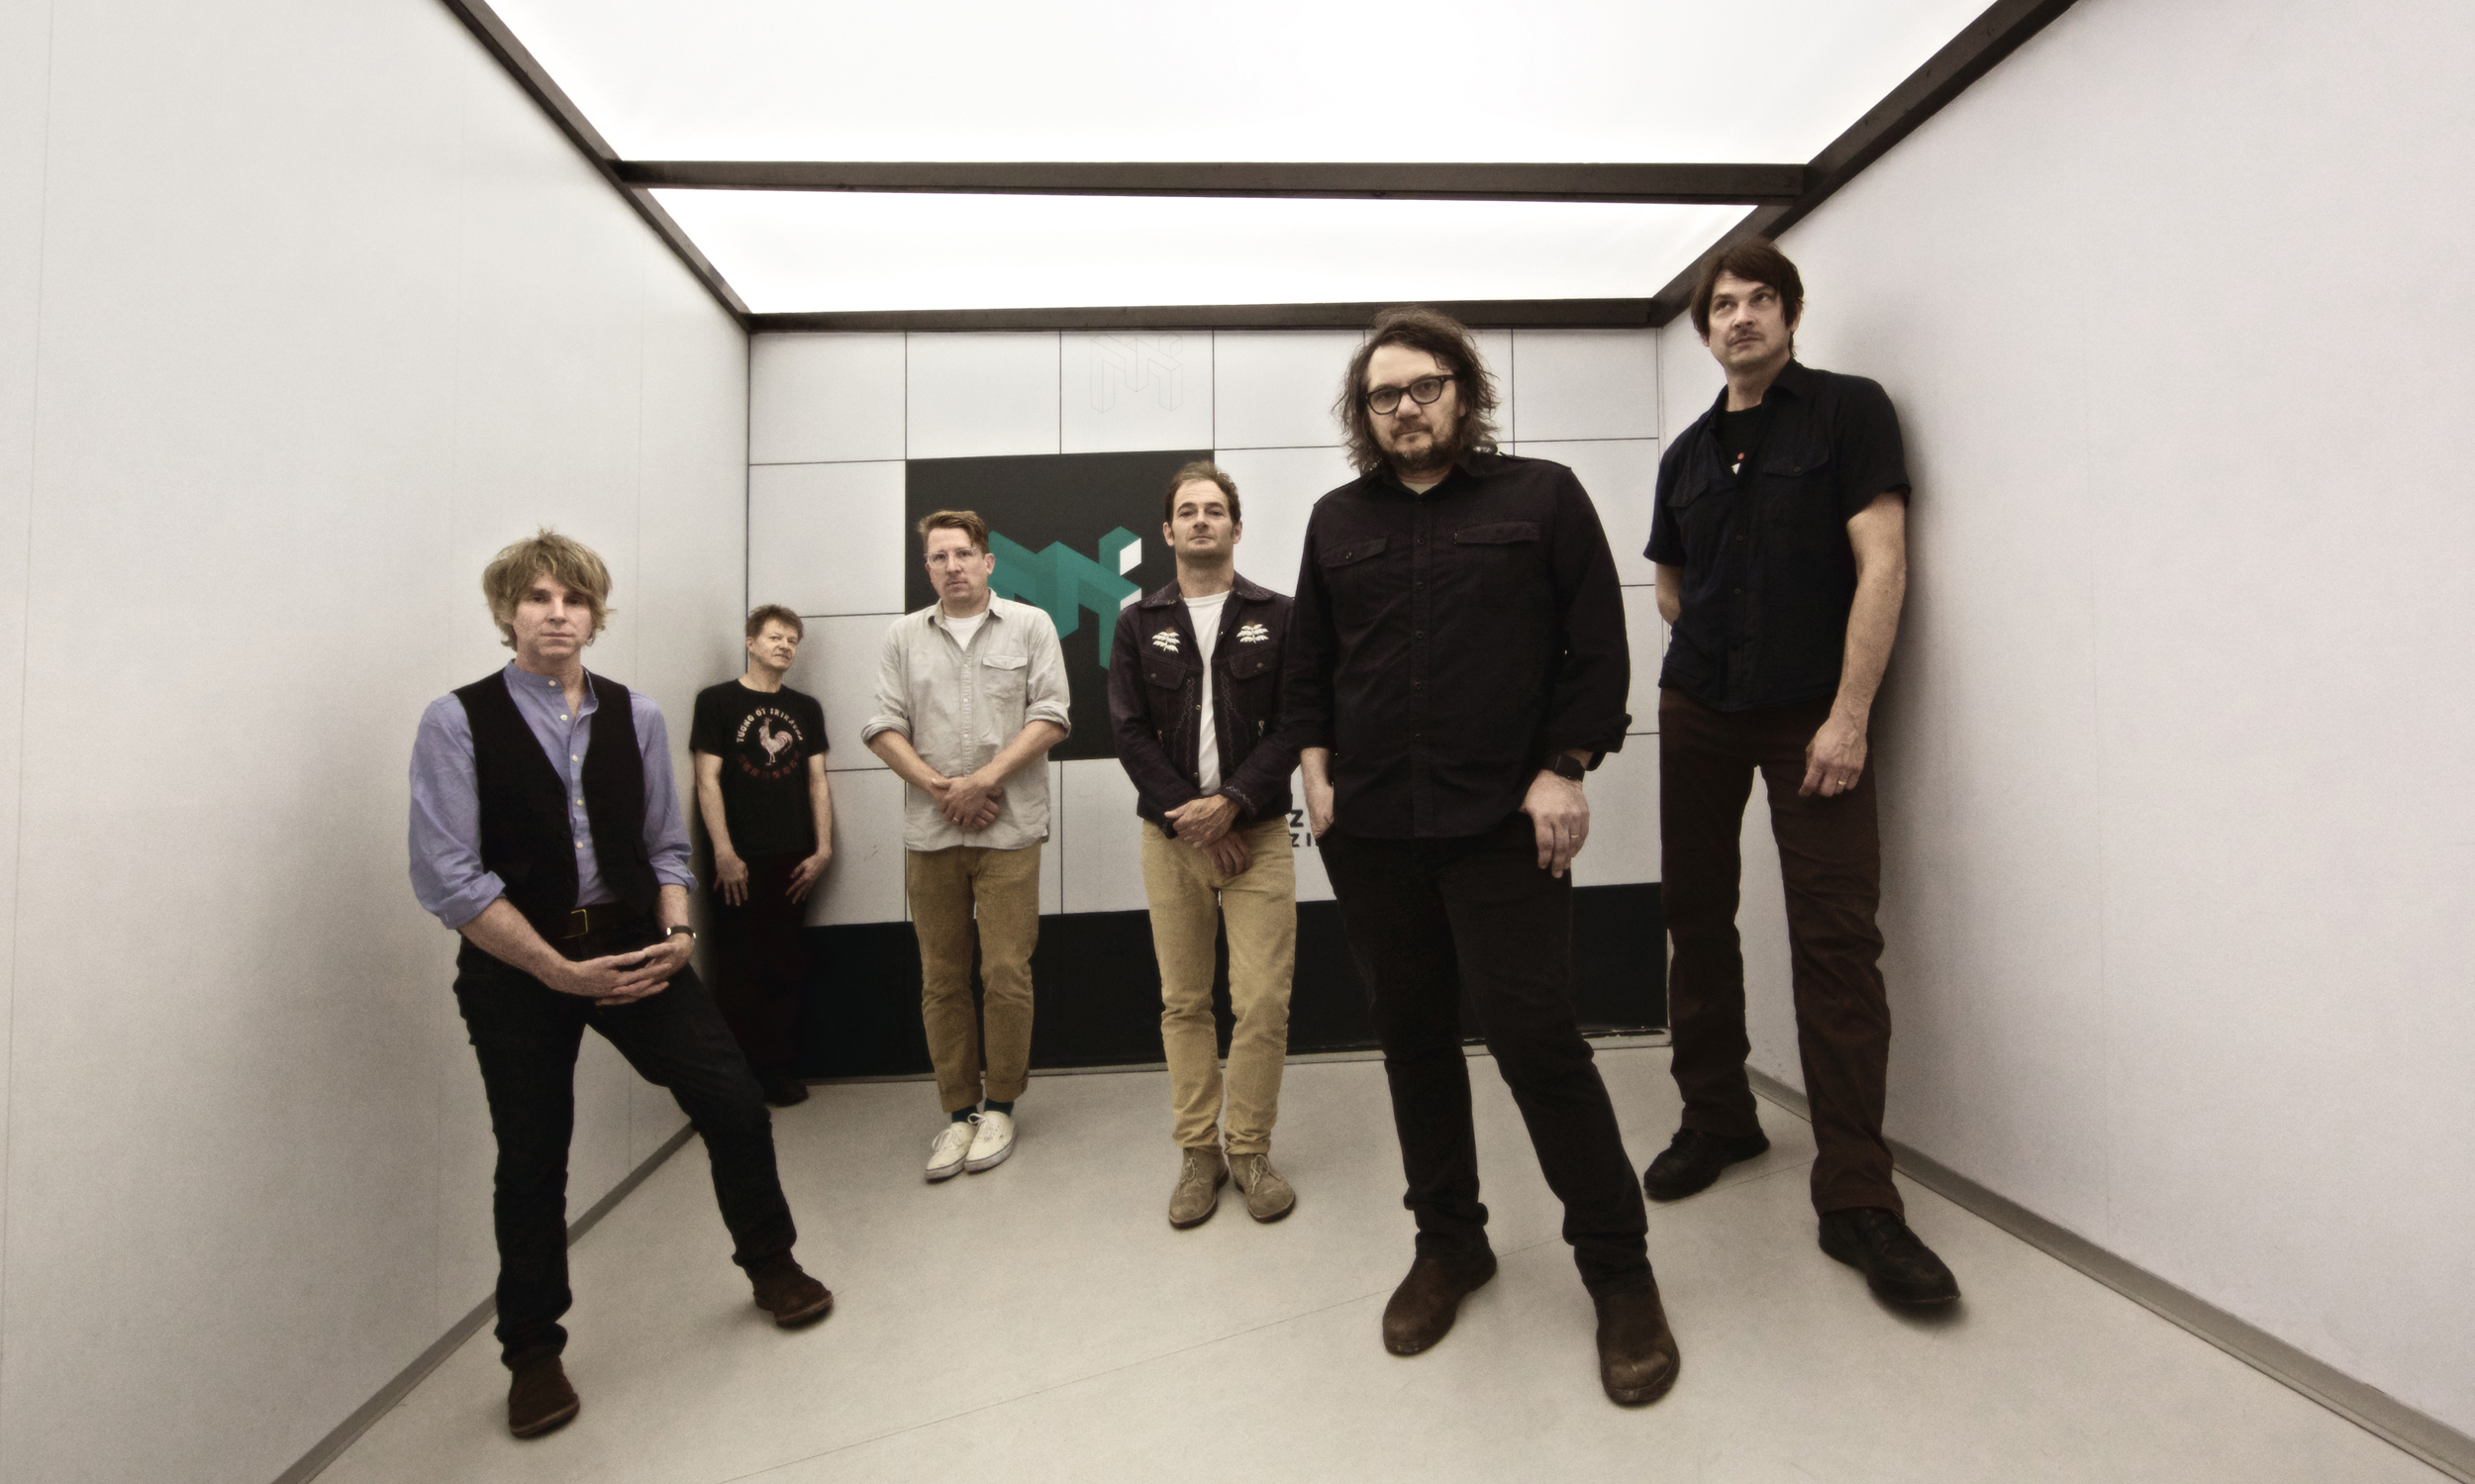 Wilco Announces Touring Hiatus, New Jeff Tweedy-Produced Mavis Staples Album